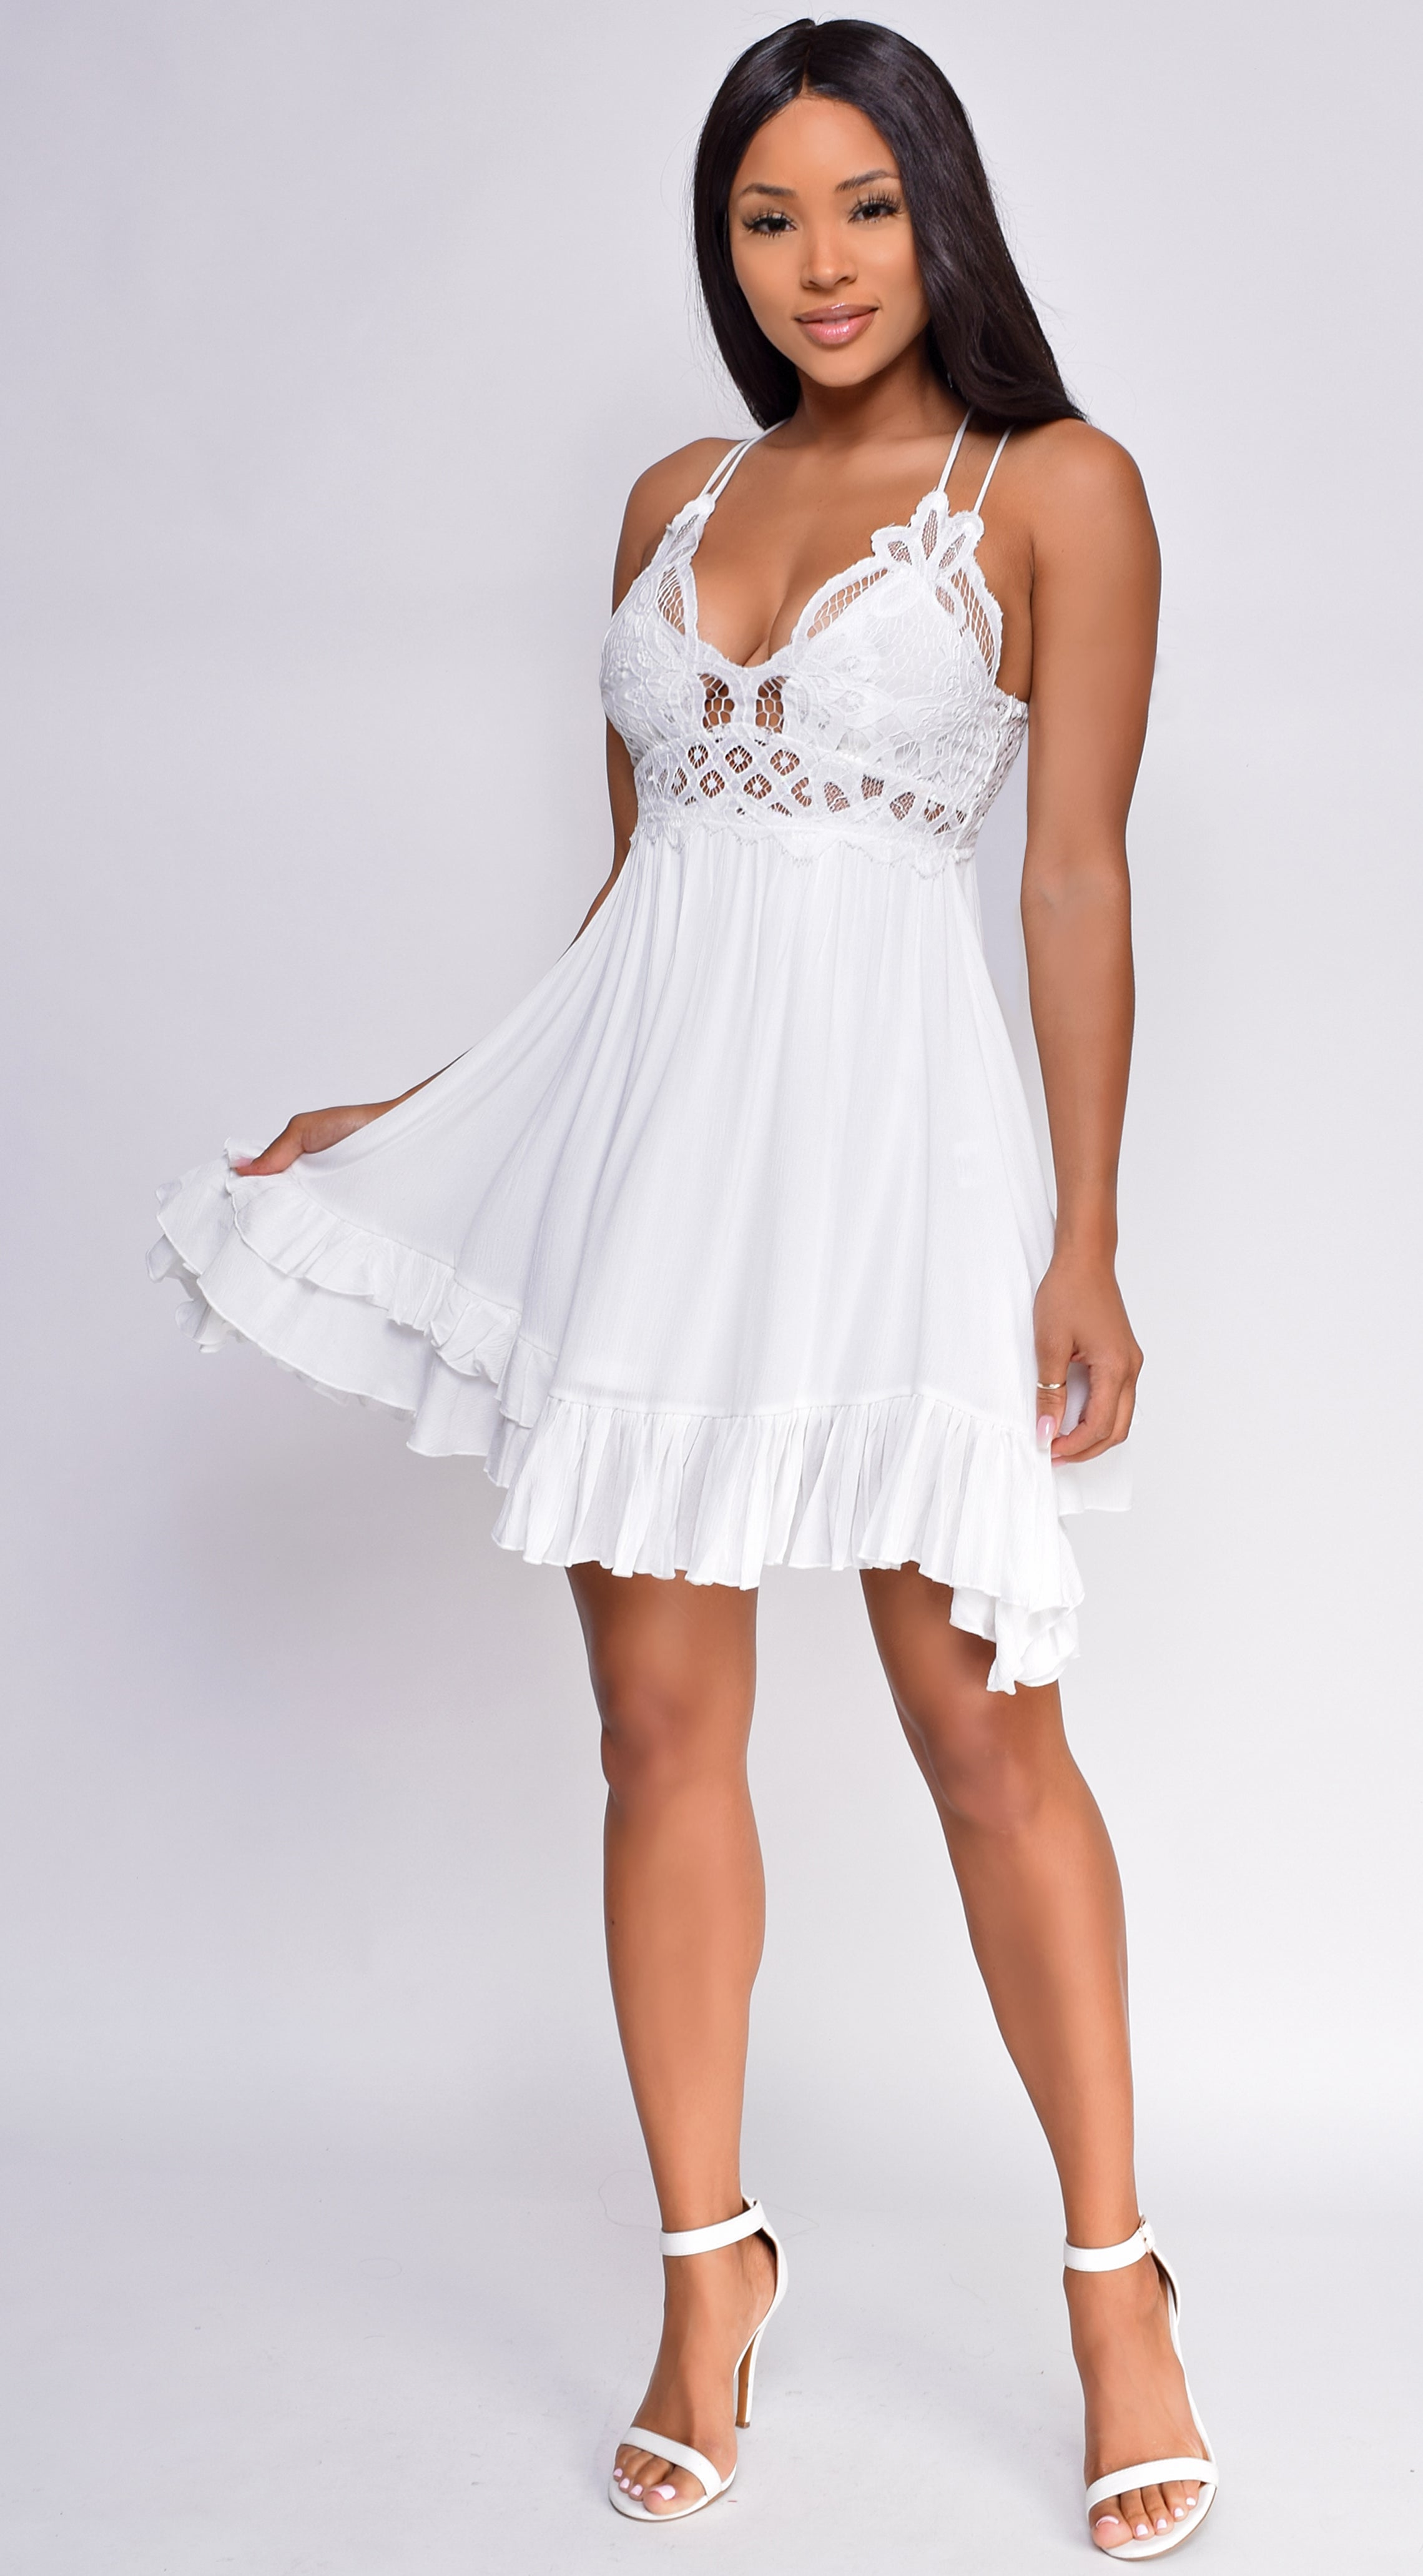 Harlynn White Boho Lace Crochet Dress